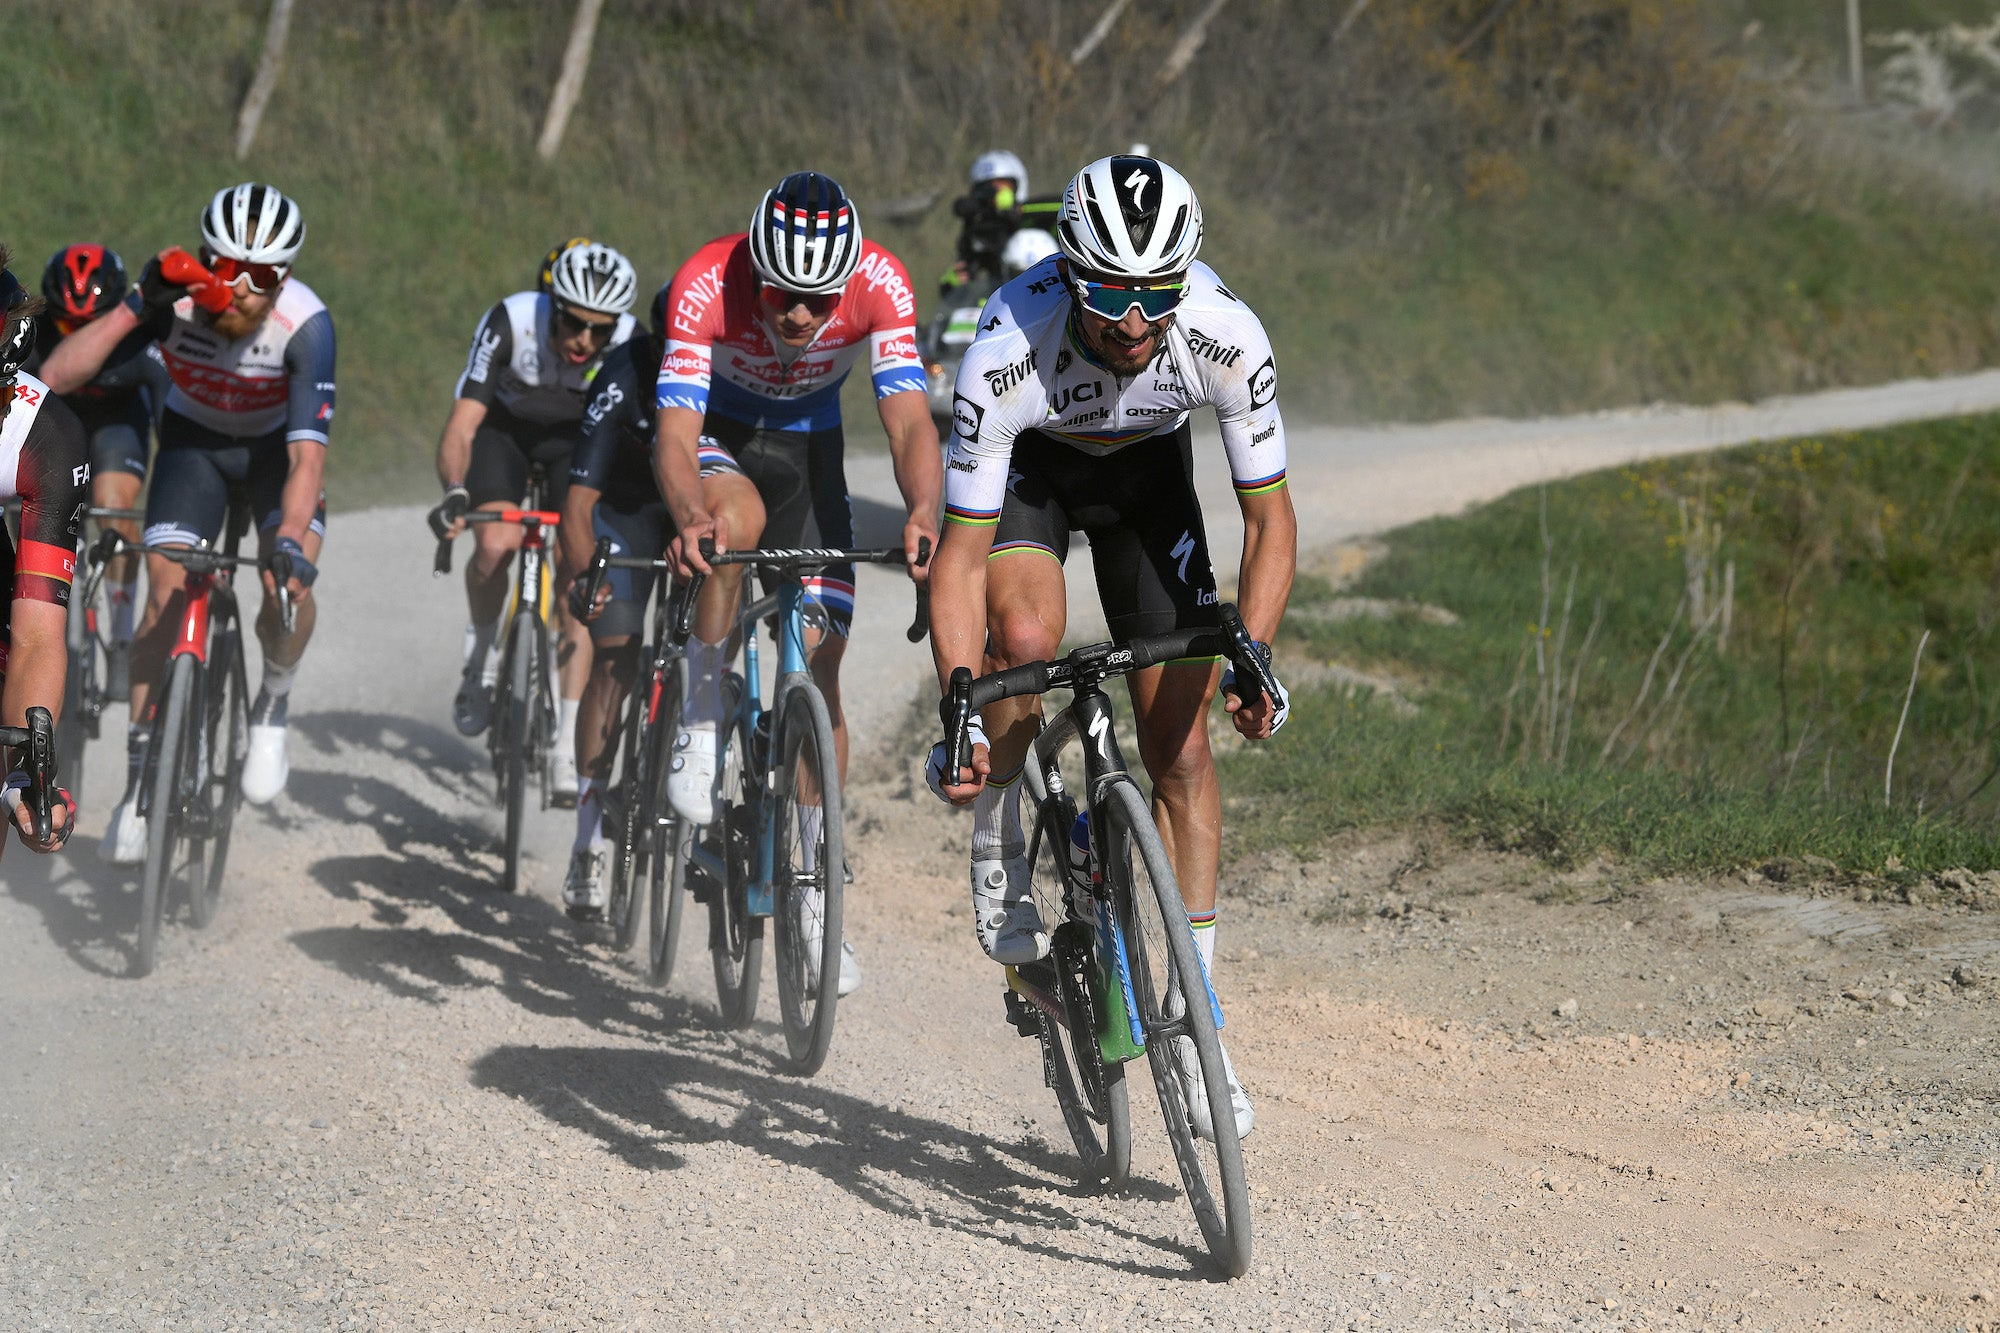 Strade Bianche: What the stars said after showdown in Siena – VeloNews.com - VeloNews